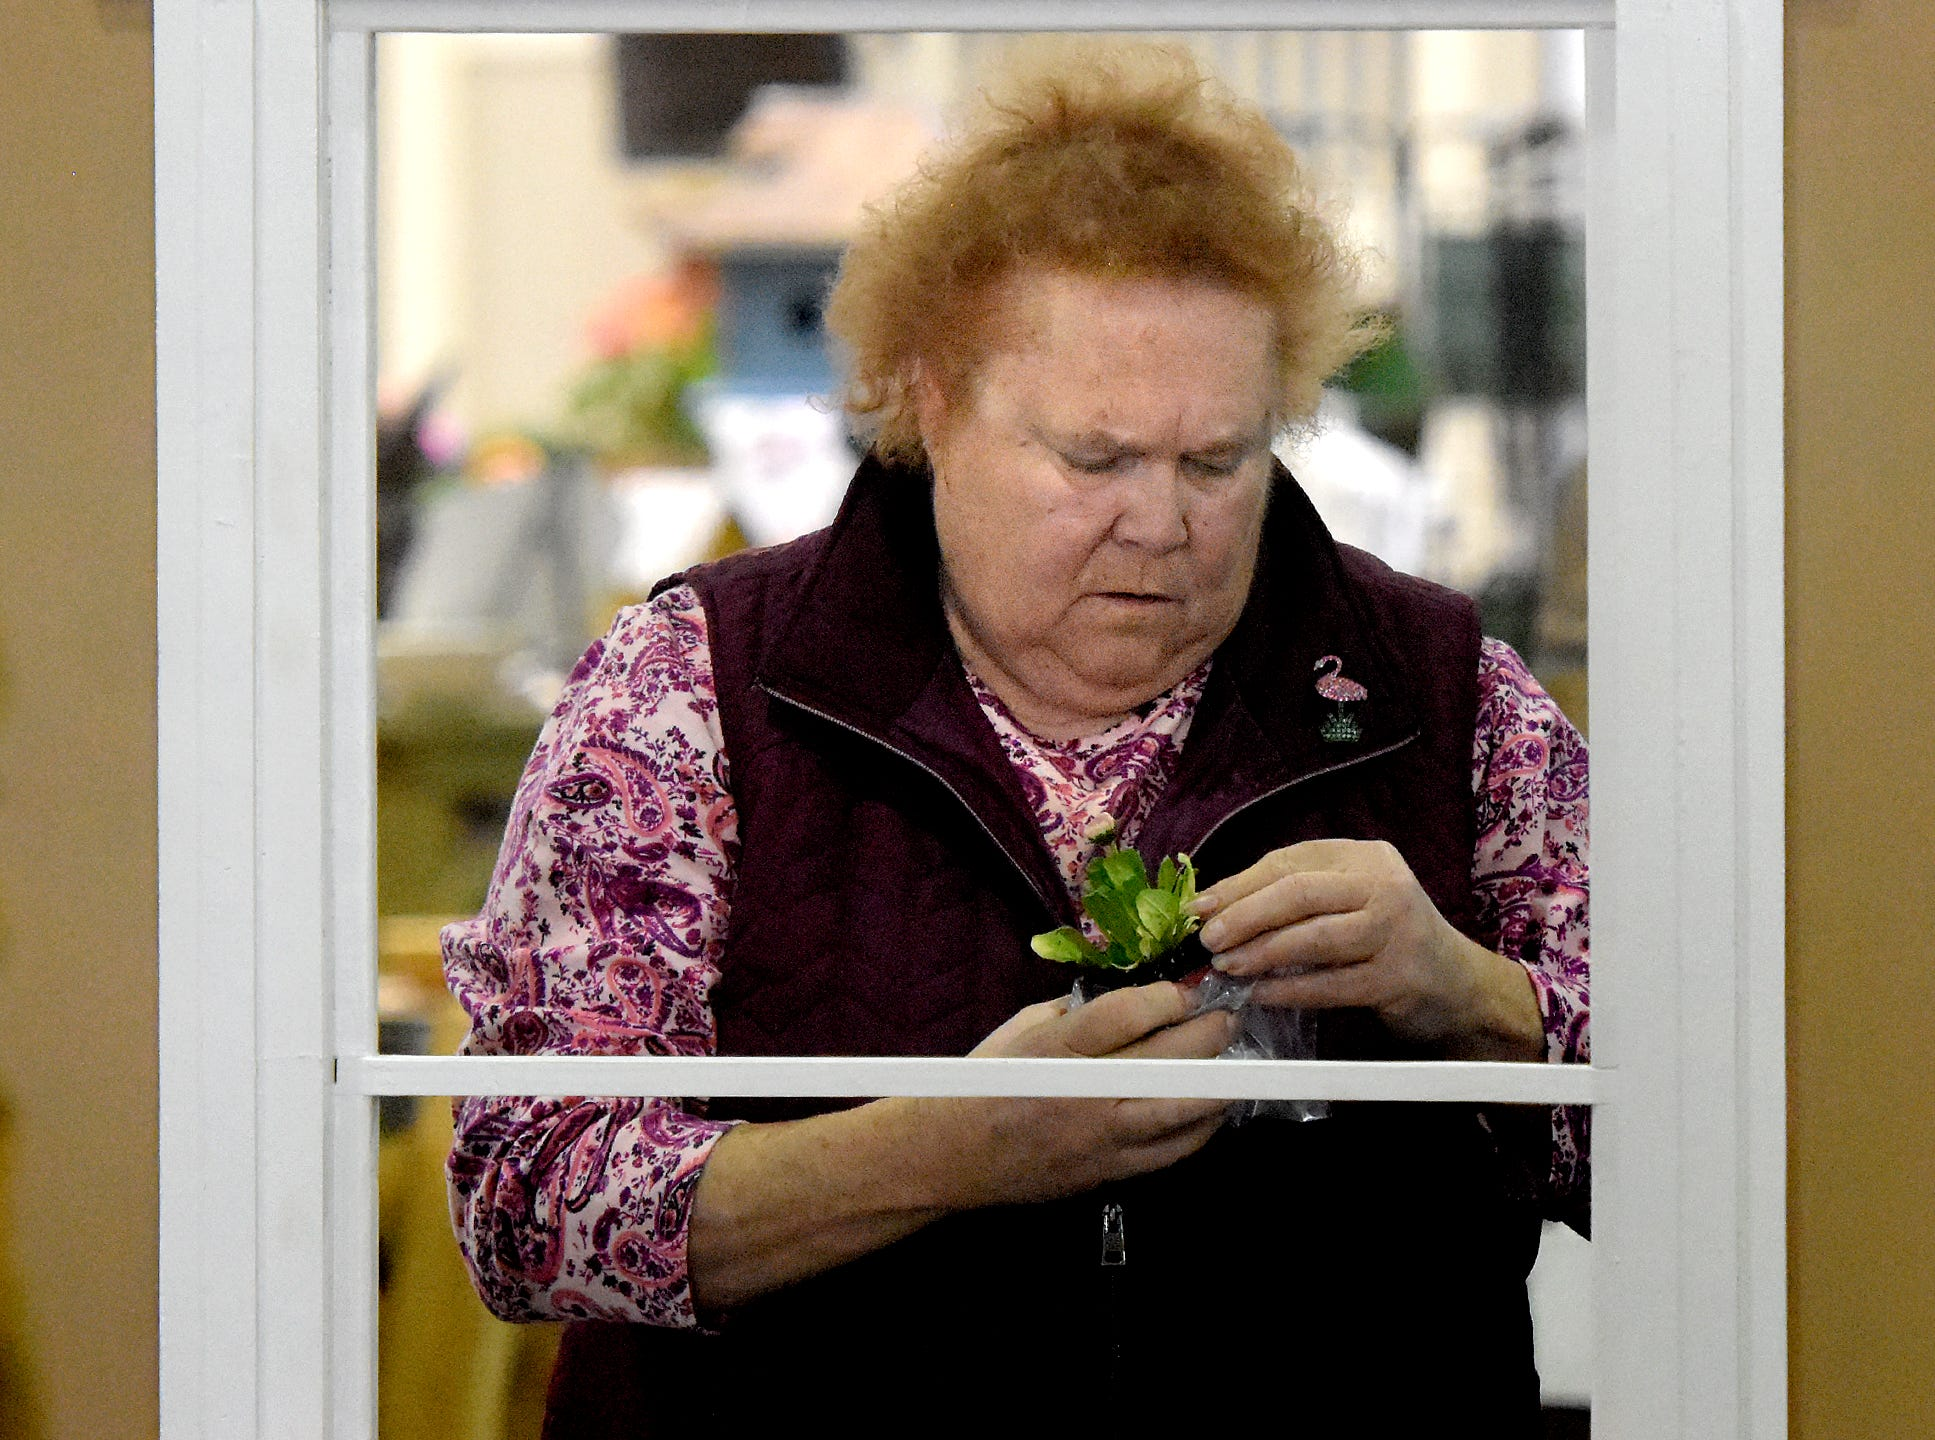 """Carol McDonald of Wrightsville places plants at the Penn State Master Gardeners exhibit at the PA Garden Show of York Wednesday, Feb. 27, 2019. The show, themed """"Flowers on Parade,"""" is in Memorial Hall at the York Expo Center March 1-3. Hours Friday and Saturday are 10 a.m. to 8 p.m., and Sunday 10 a.m. to 5 p.m. Admission for adults is $10. Children are free with multi-day passes and and senior discounts offered. Bill Kalina photo"""